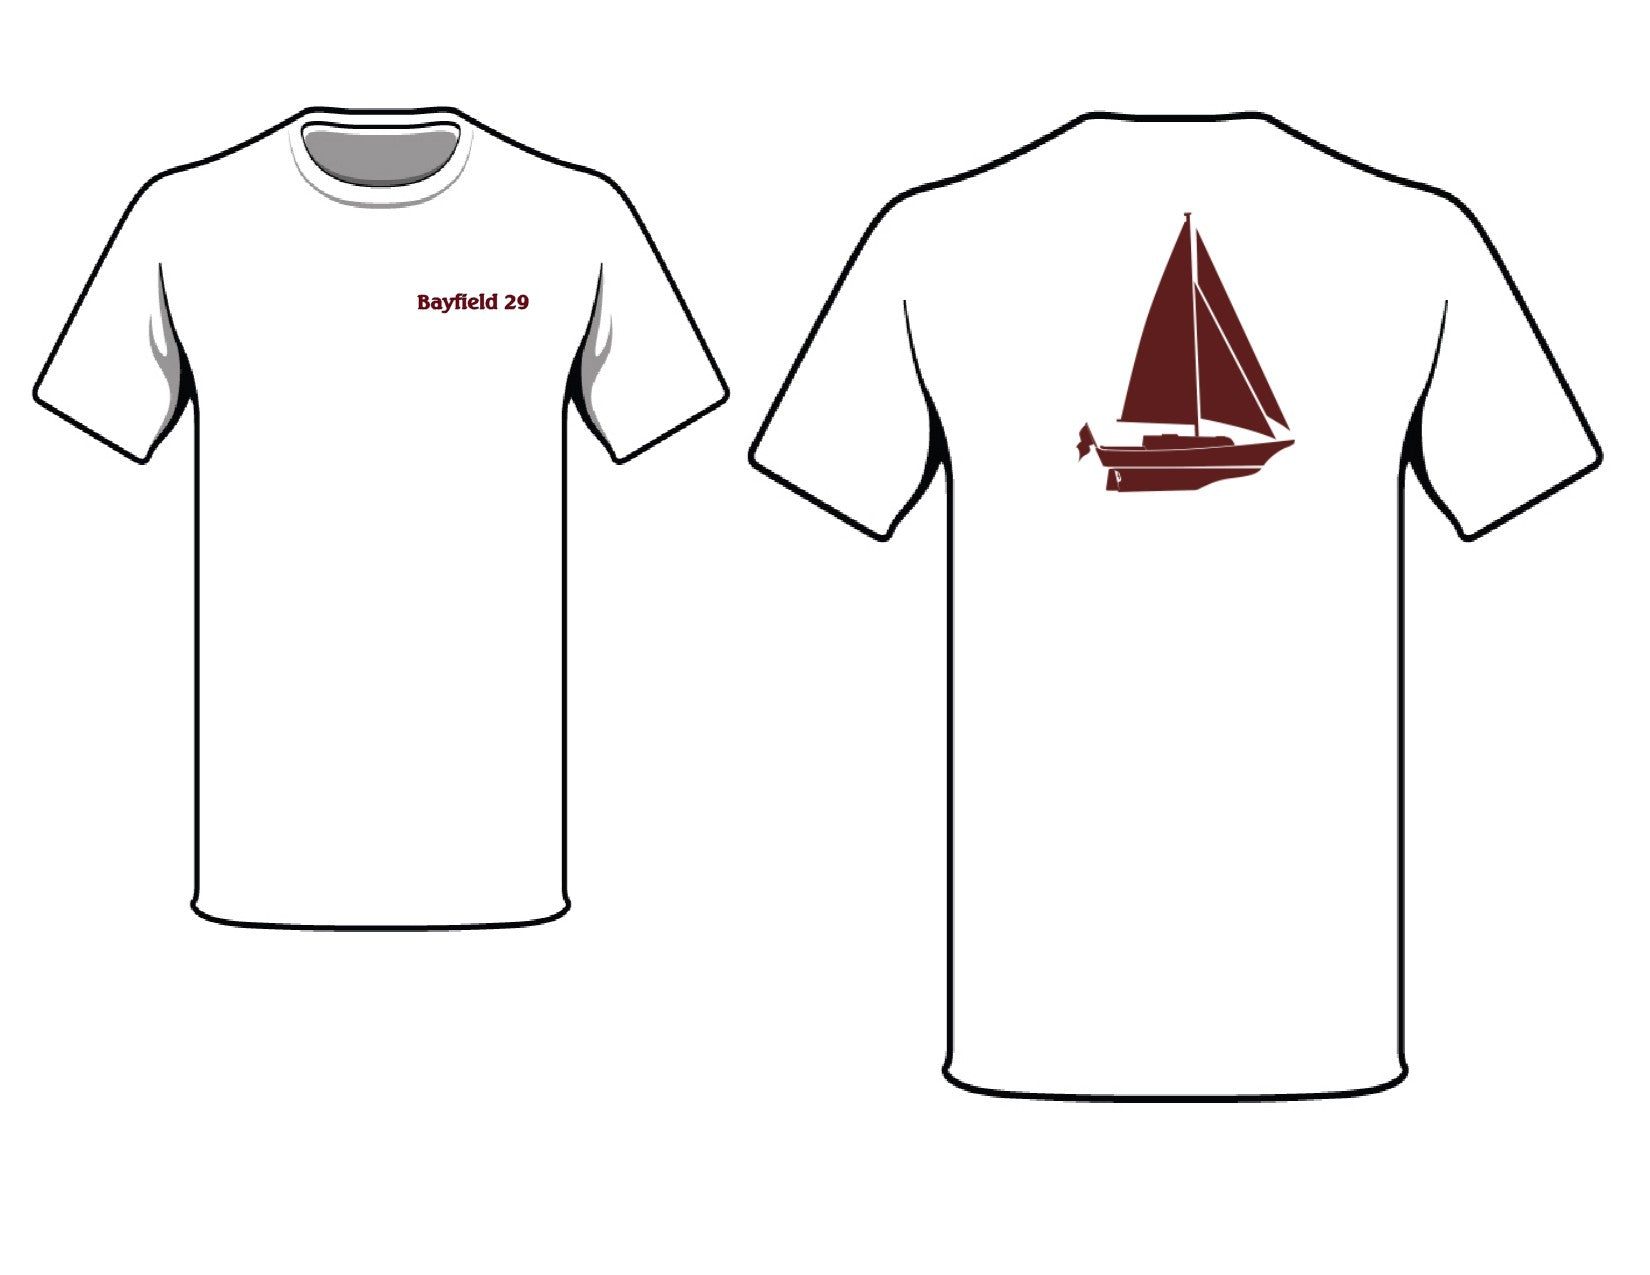 Bayfield 29 T-Shirt